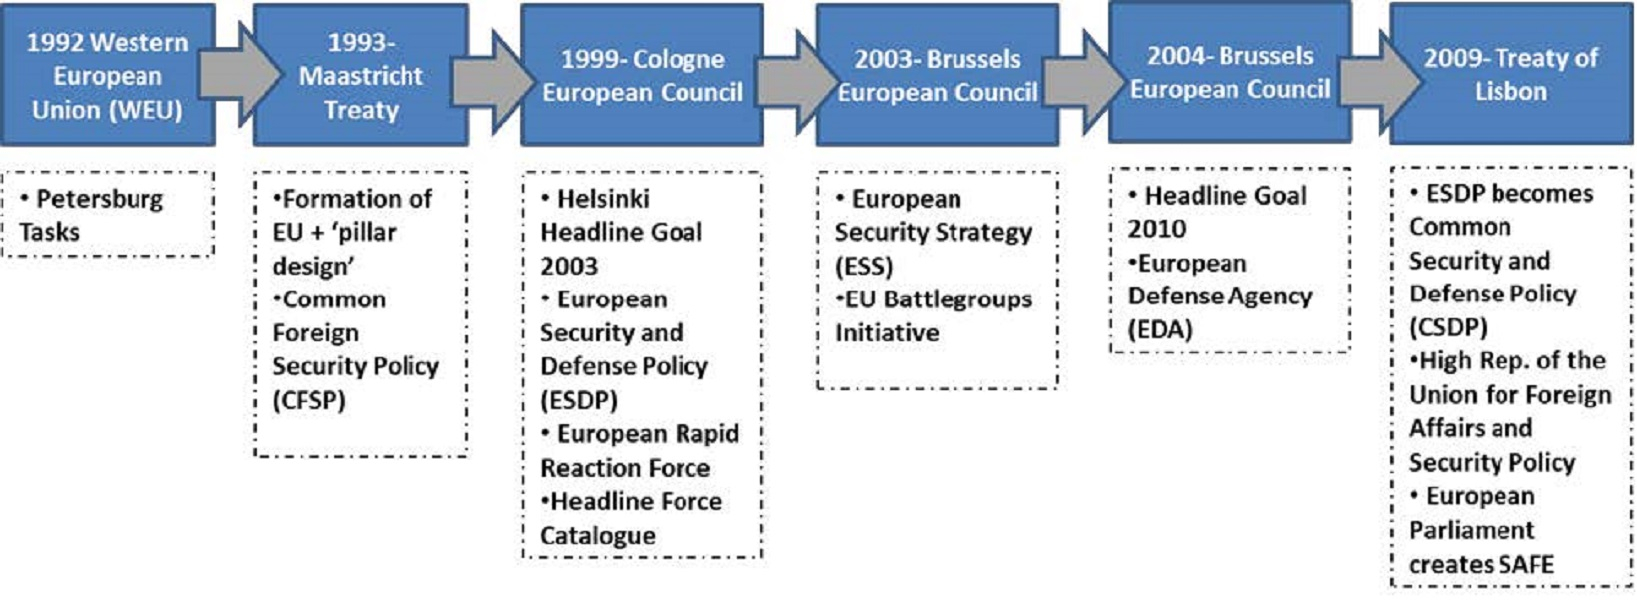 Milestones of EU Security Policy